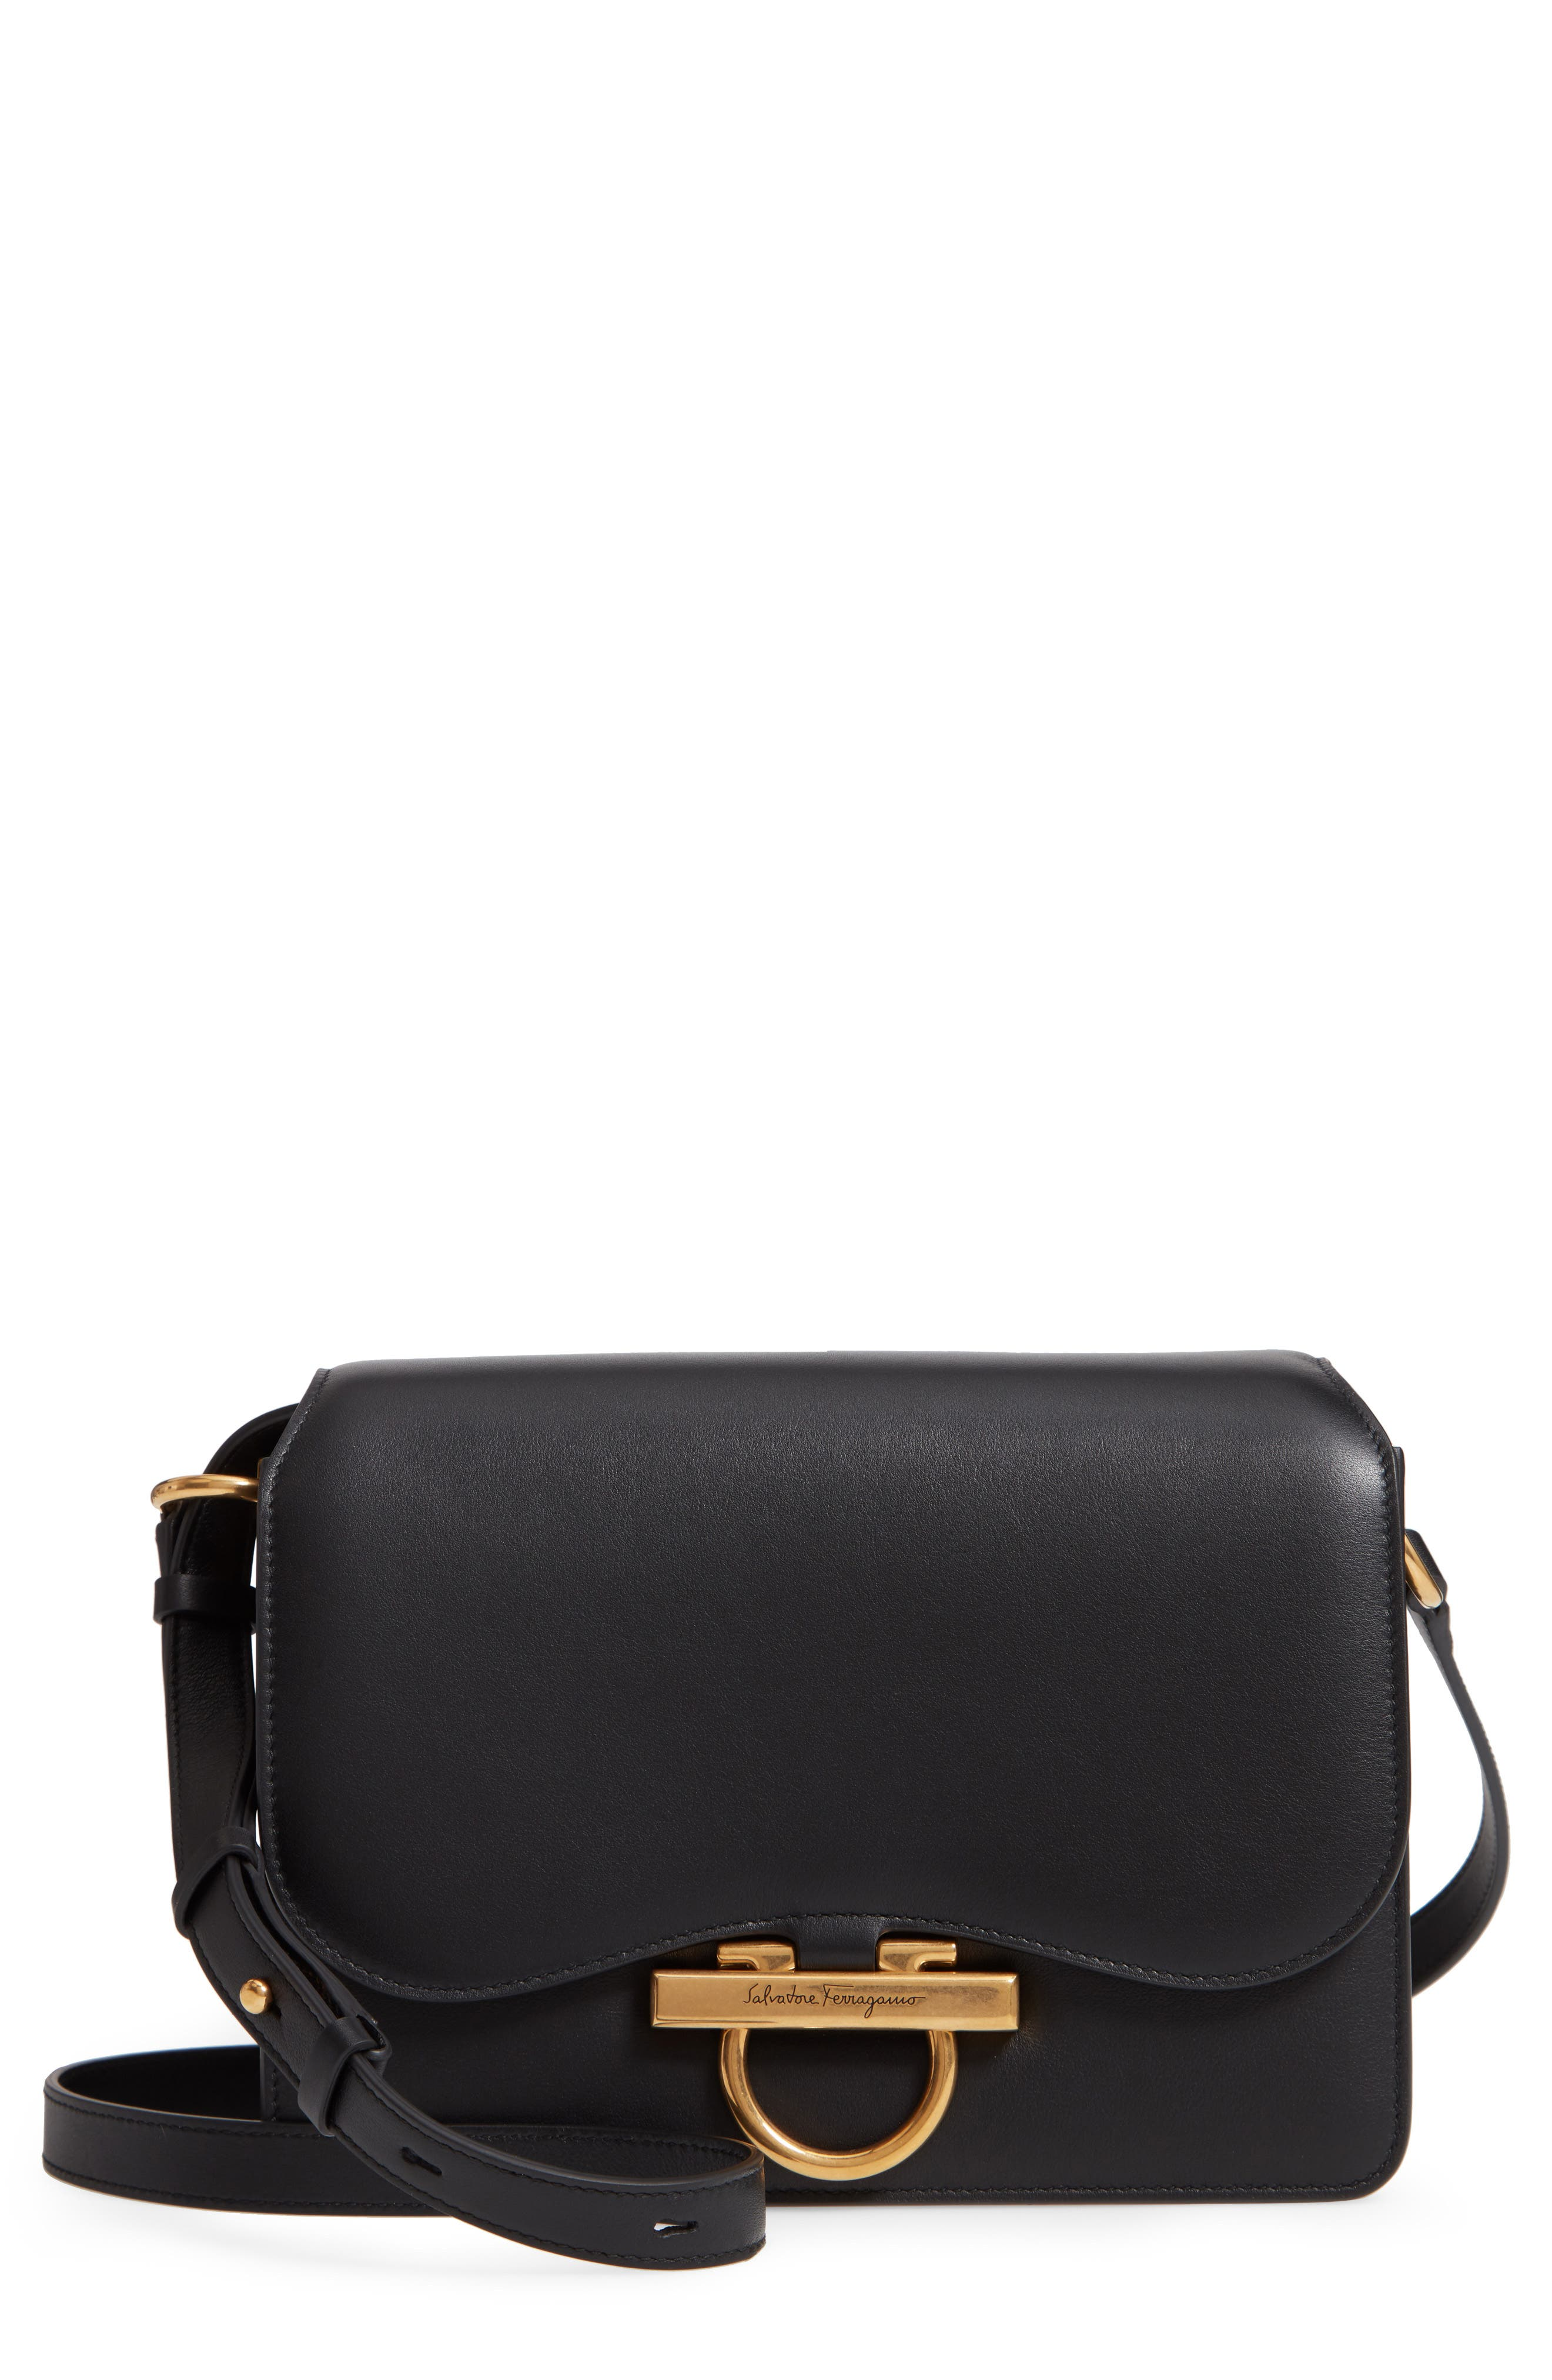 Medium Classic Flap Leather Shoulder Bag,                             Main thumbnail 1, color,                             BLACK